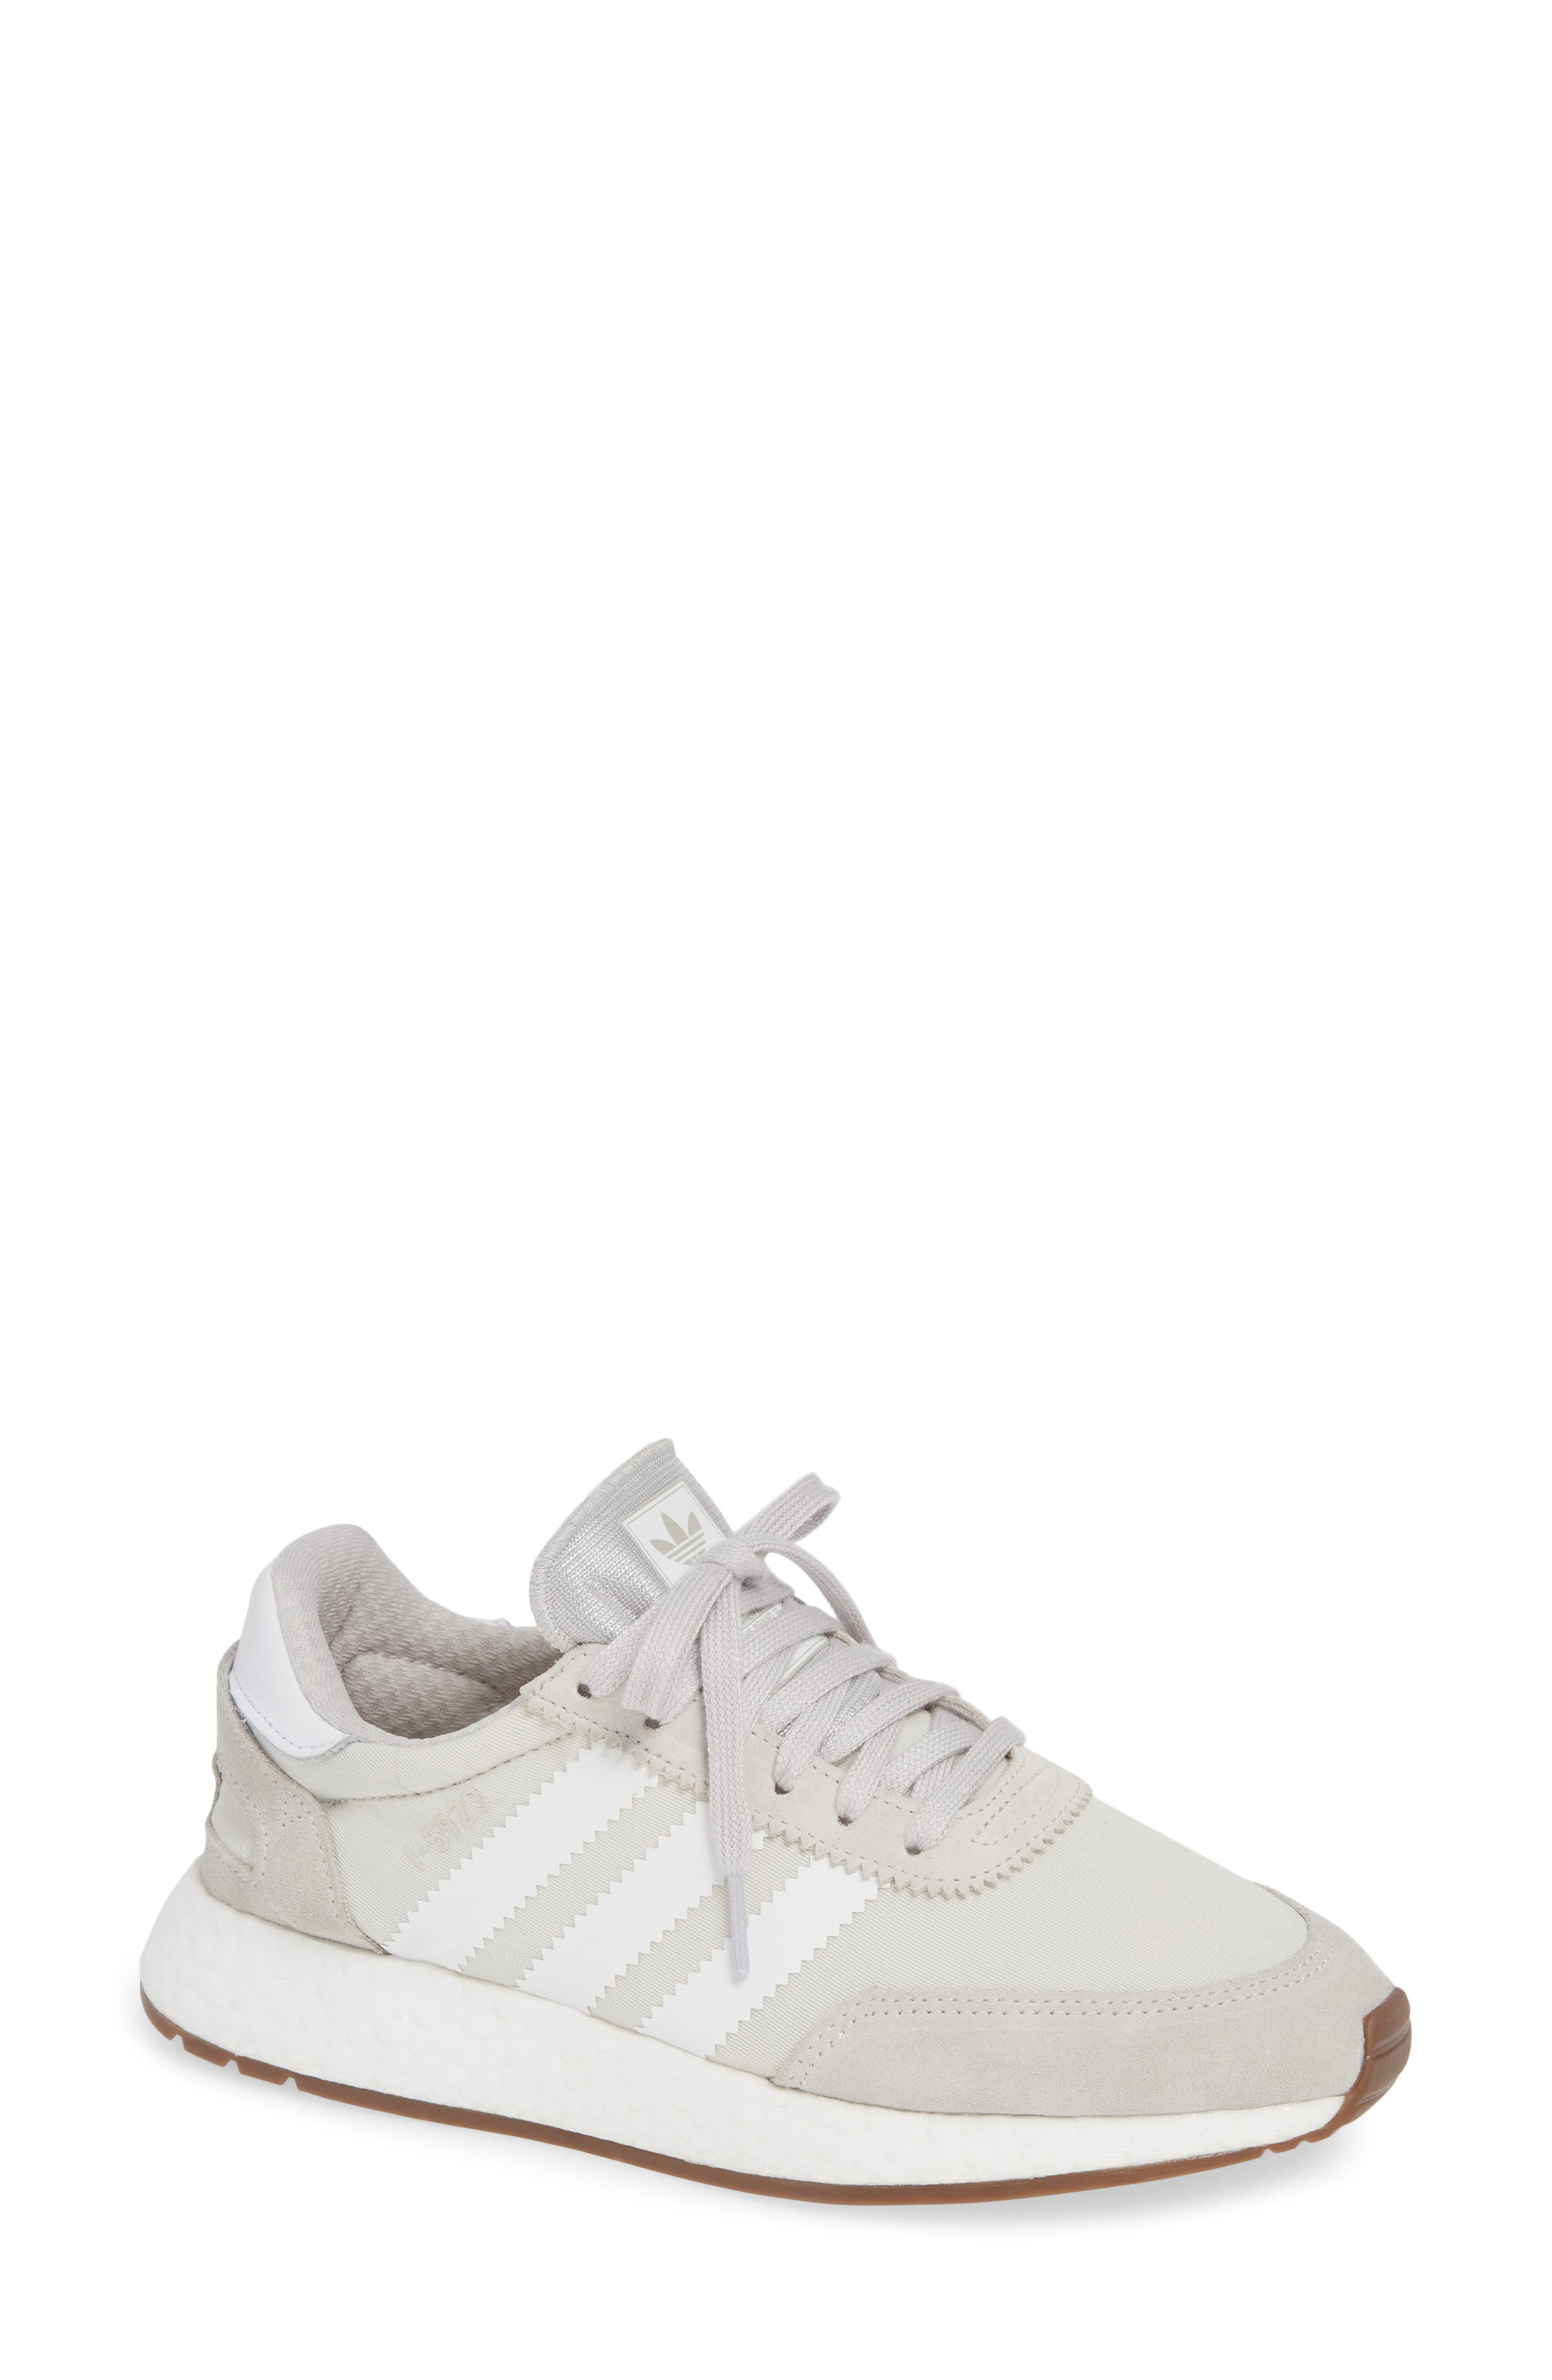 I-5923 Sneaker,                             Main thumbnail 1, color,                             GREY ONE/ WHITE/ GREY FIVE